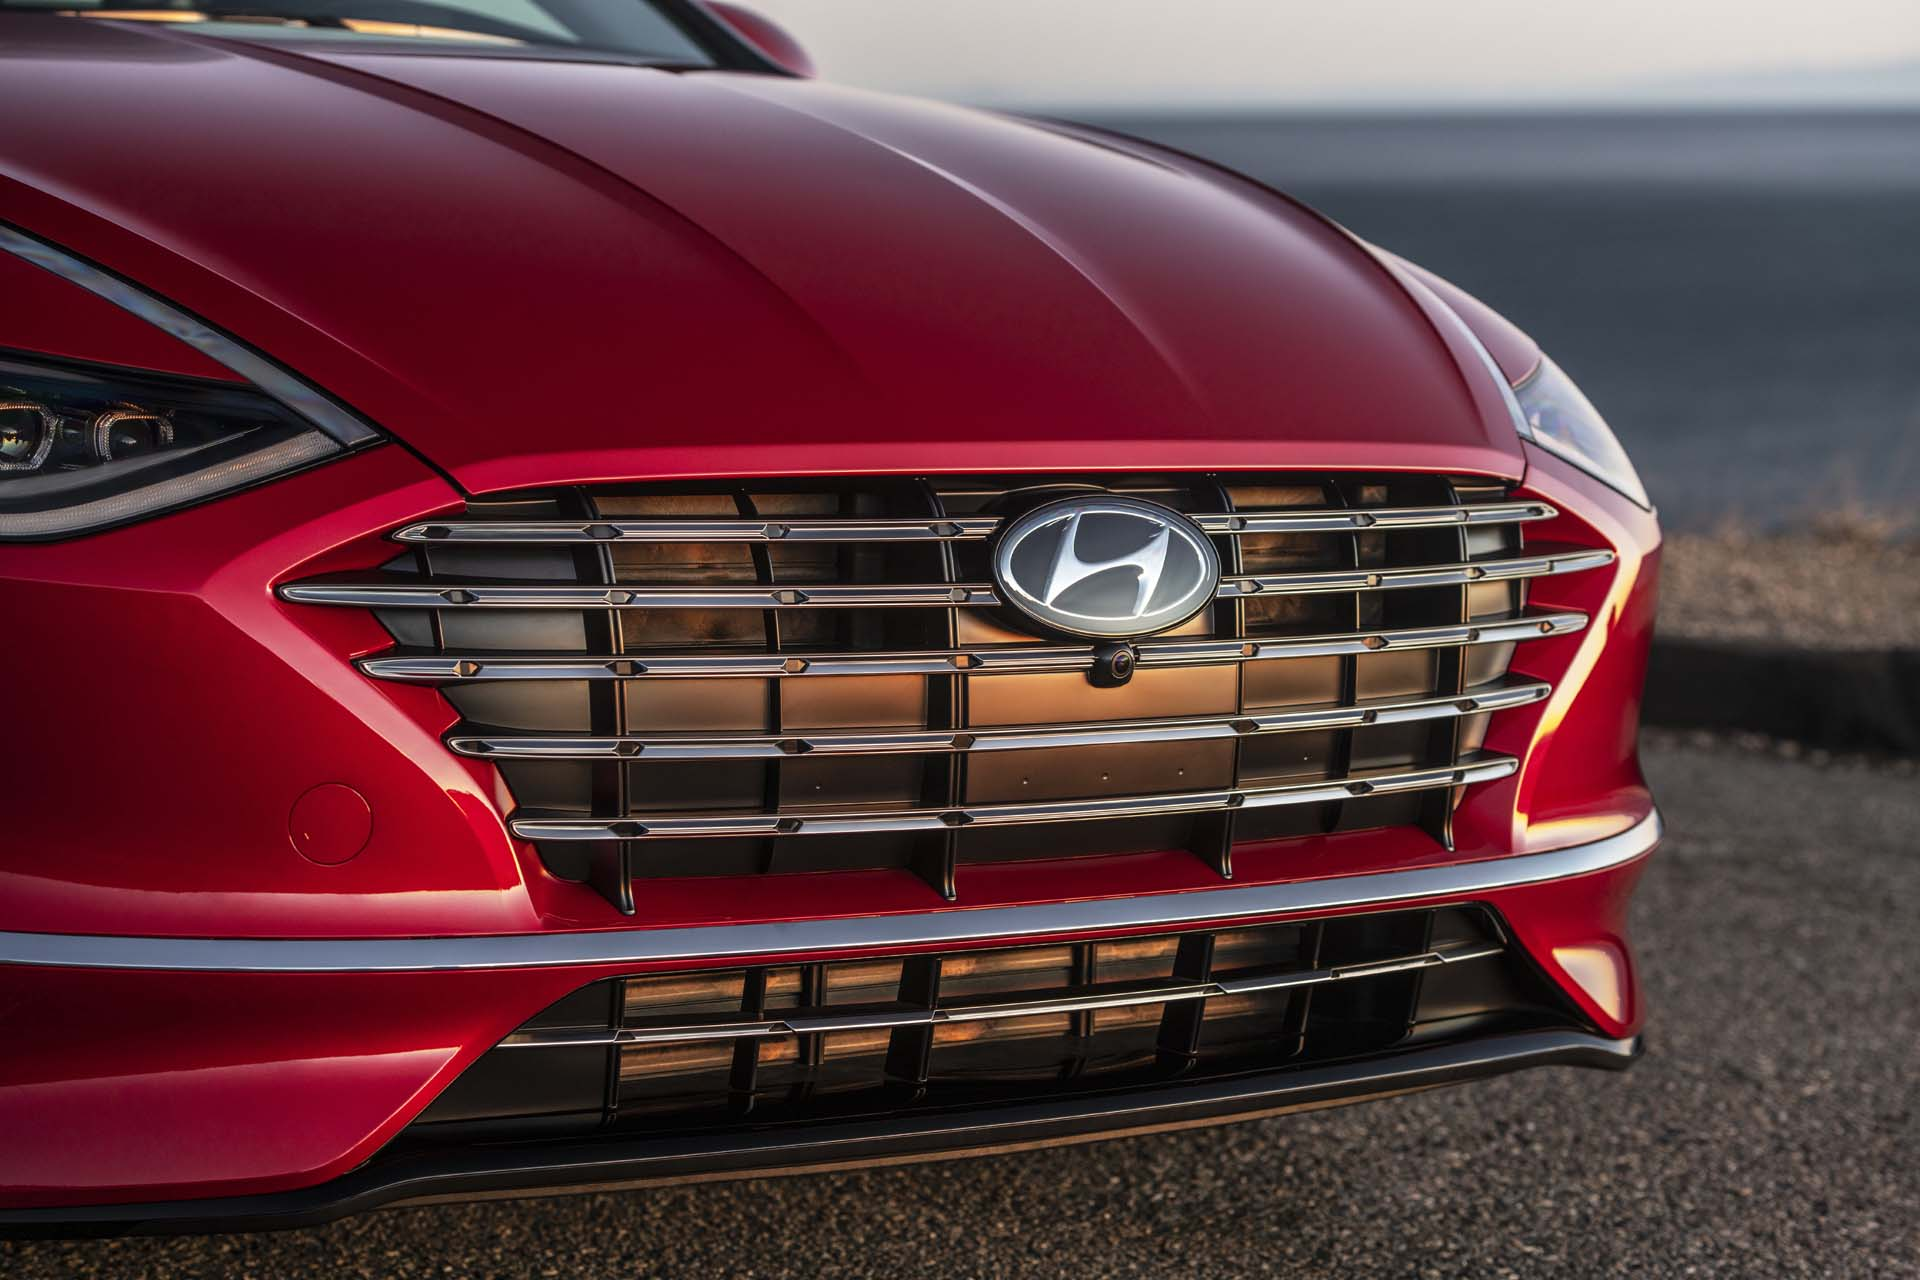 Hyundai connects its transmissions to all the data, boosts vehicle efficiency